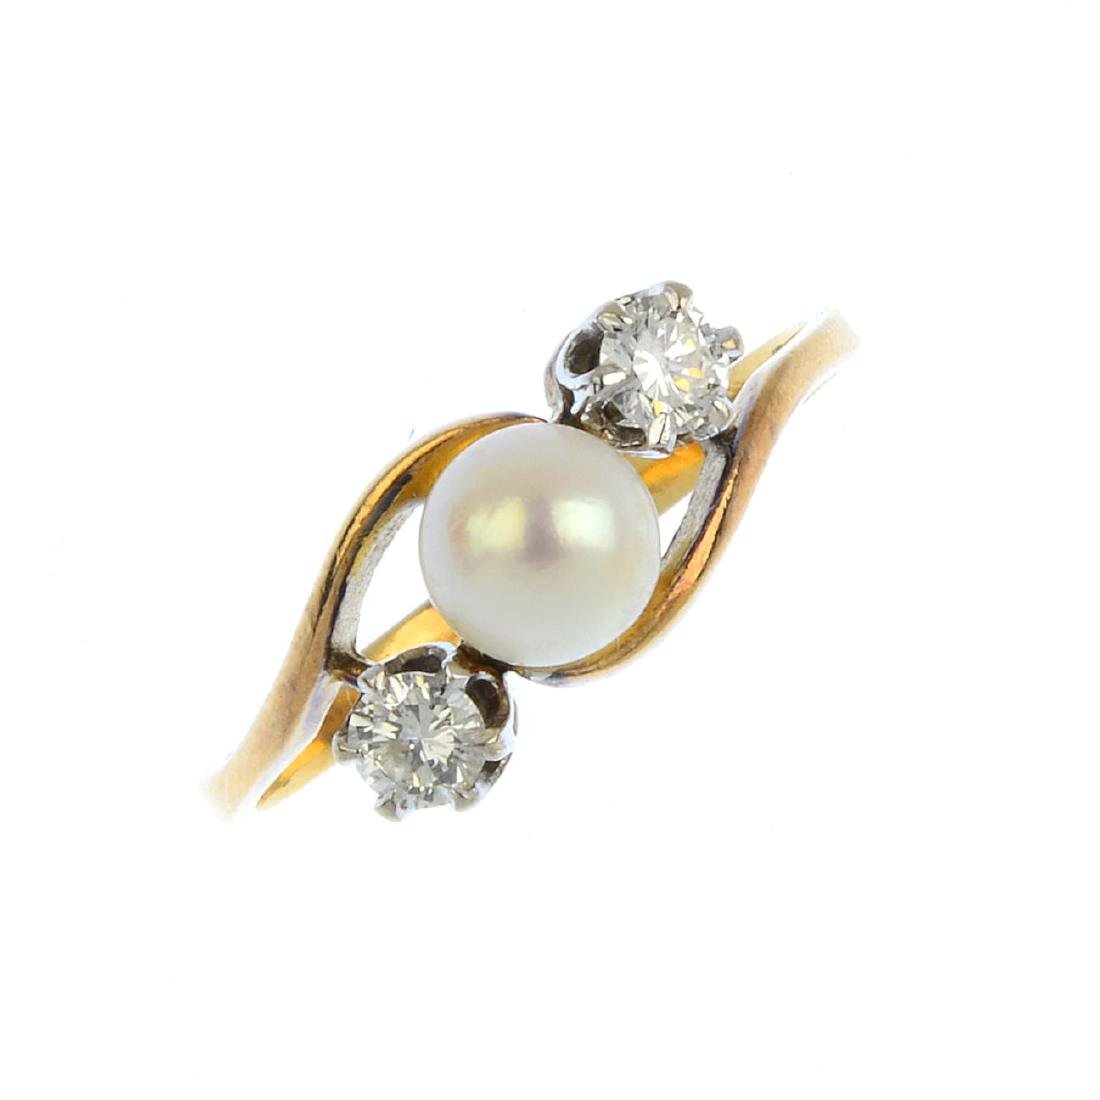 A cultured pearl and diamond ring. The cultured pearl,